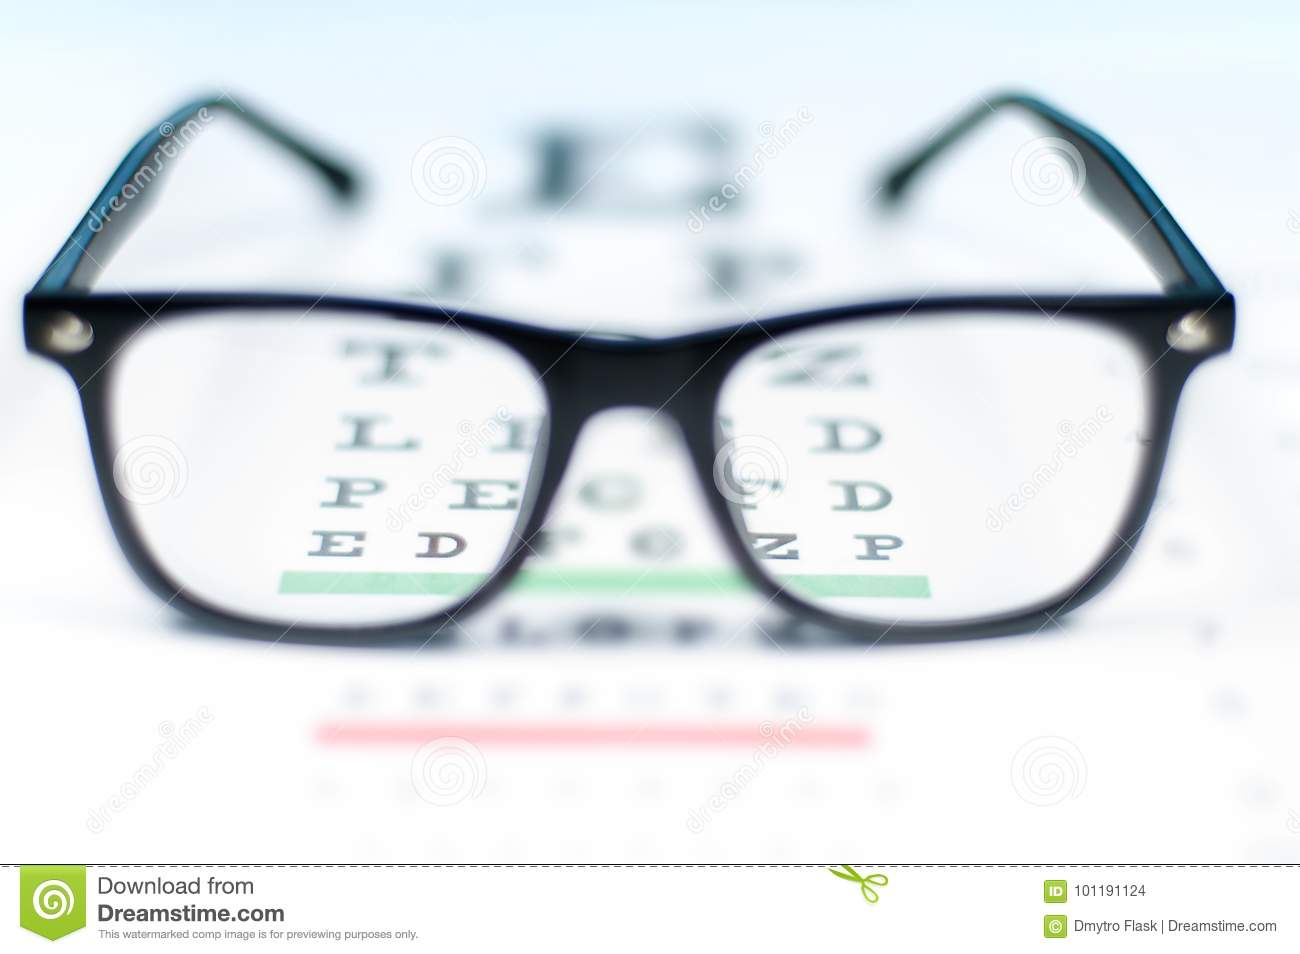 f2ca342b05 Eye Vision Test Chart Seen Through Eye Glasses. Stock Photo - Image ...